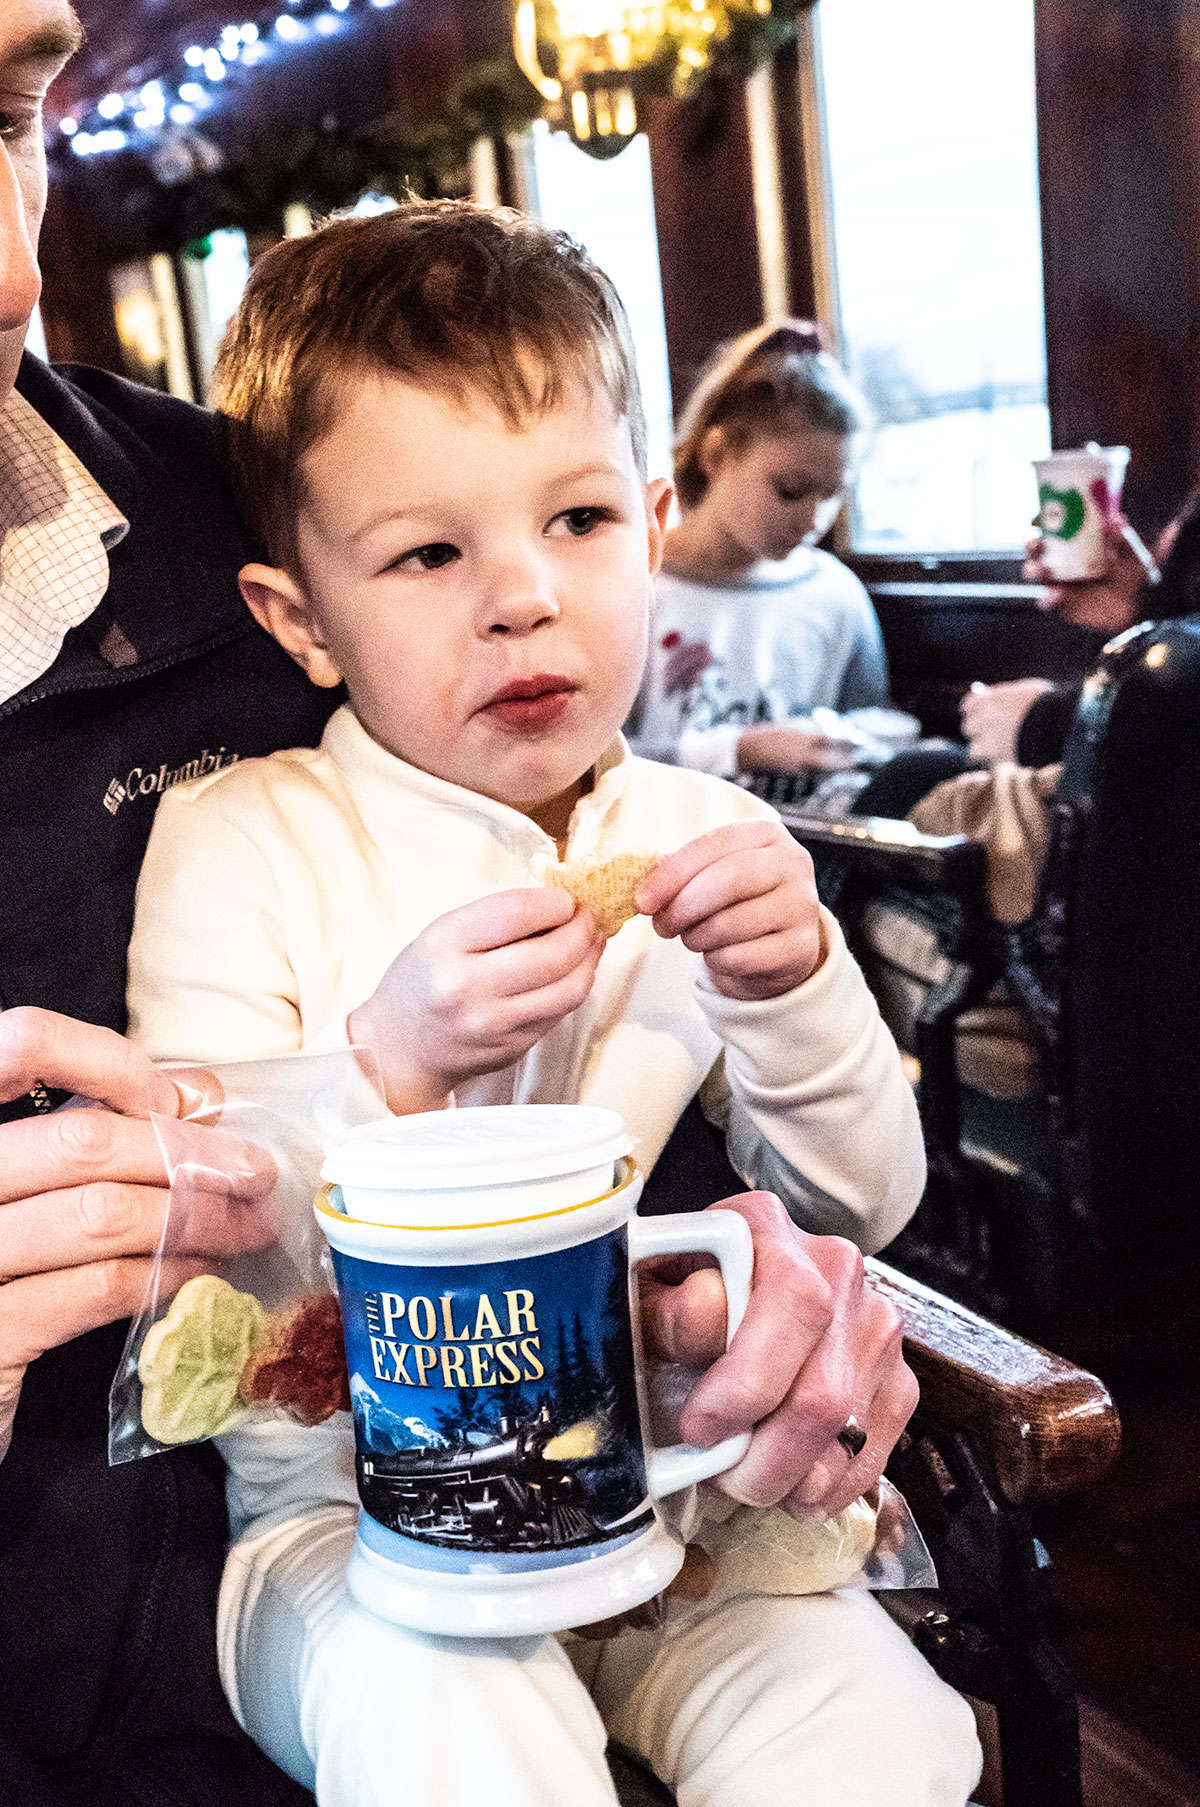 Cookies-and-Cocoa-at-Polar-Express